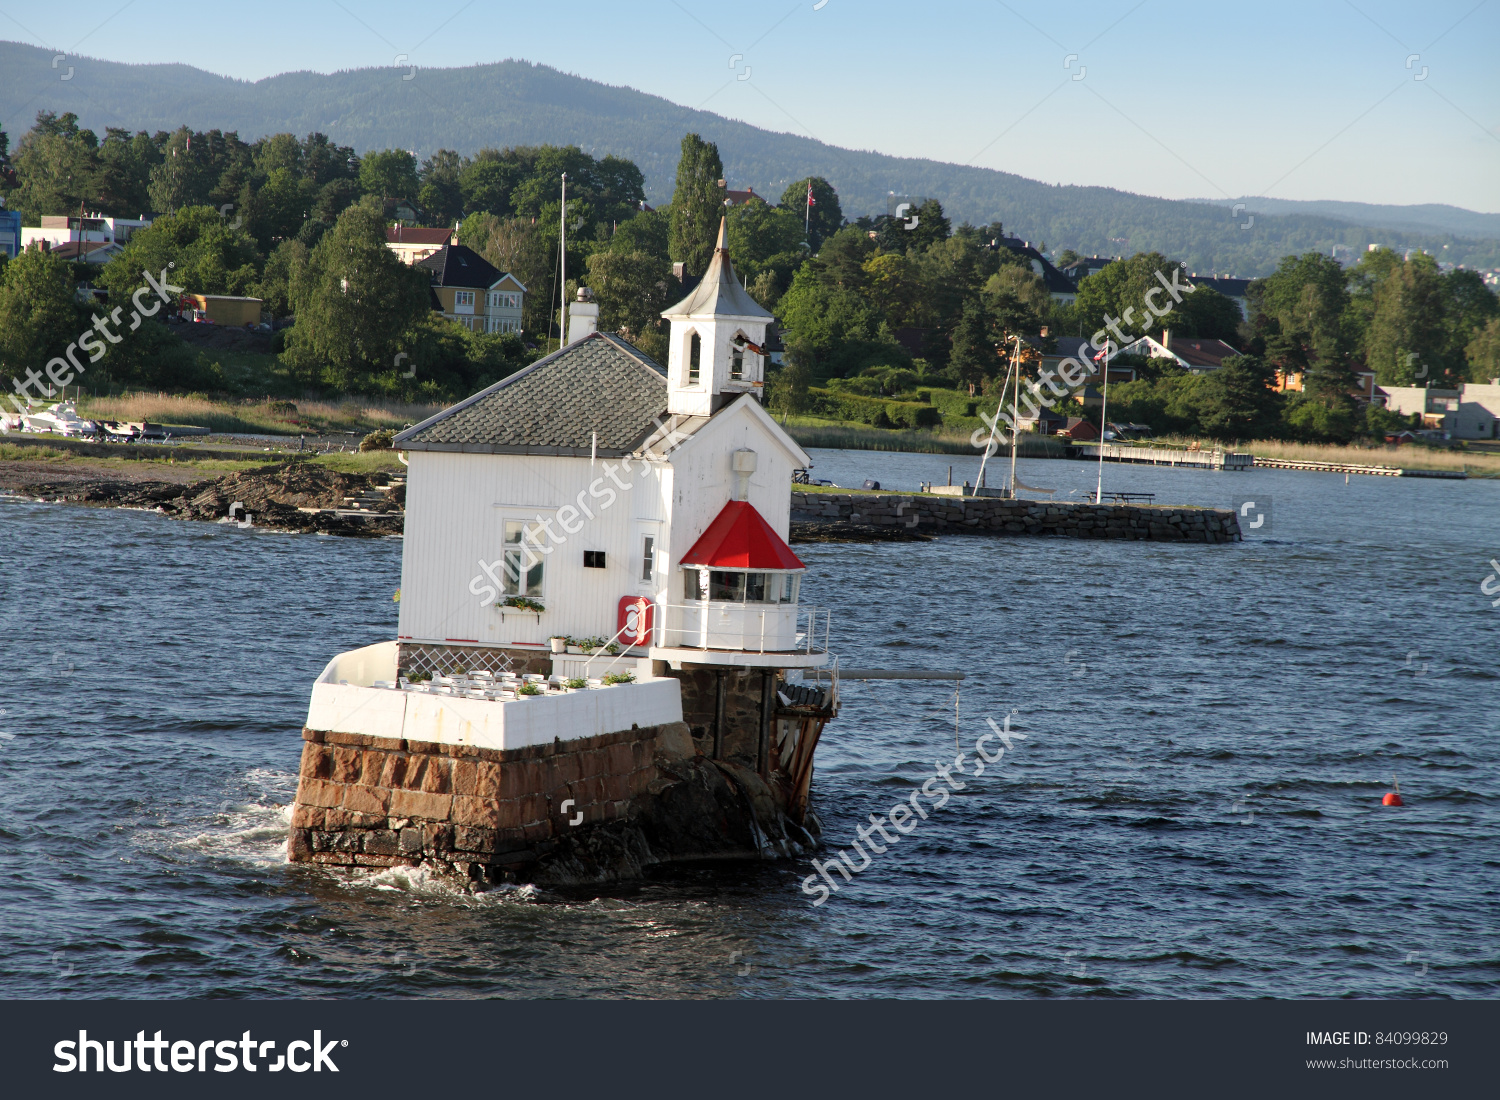 Small Restaurant Church Middle Oslo Fjord Stock Photo 84099829.